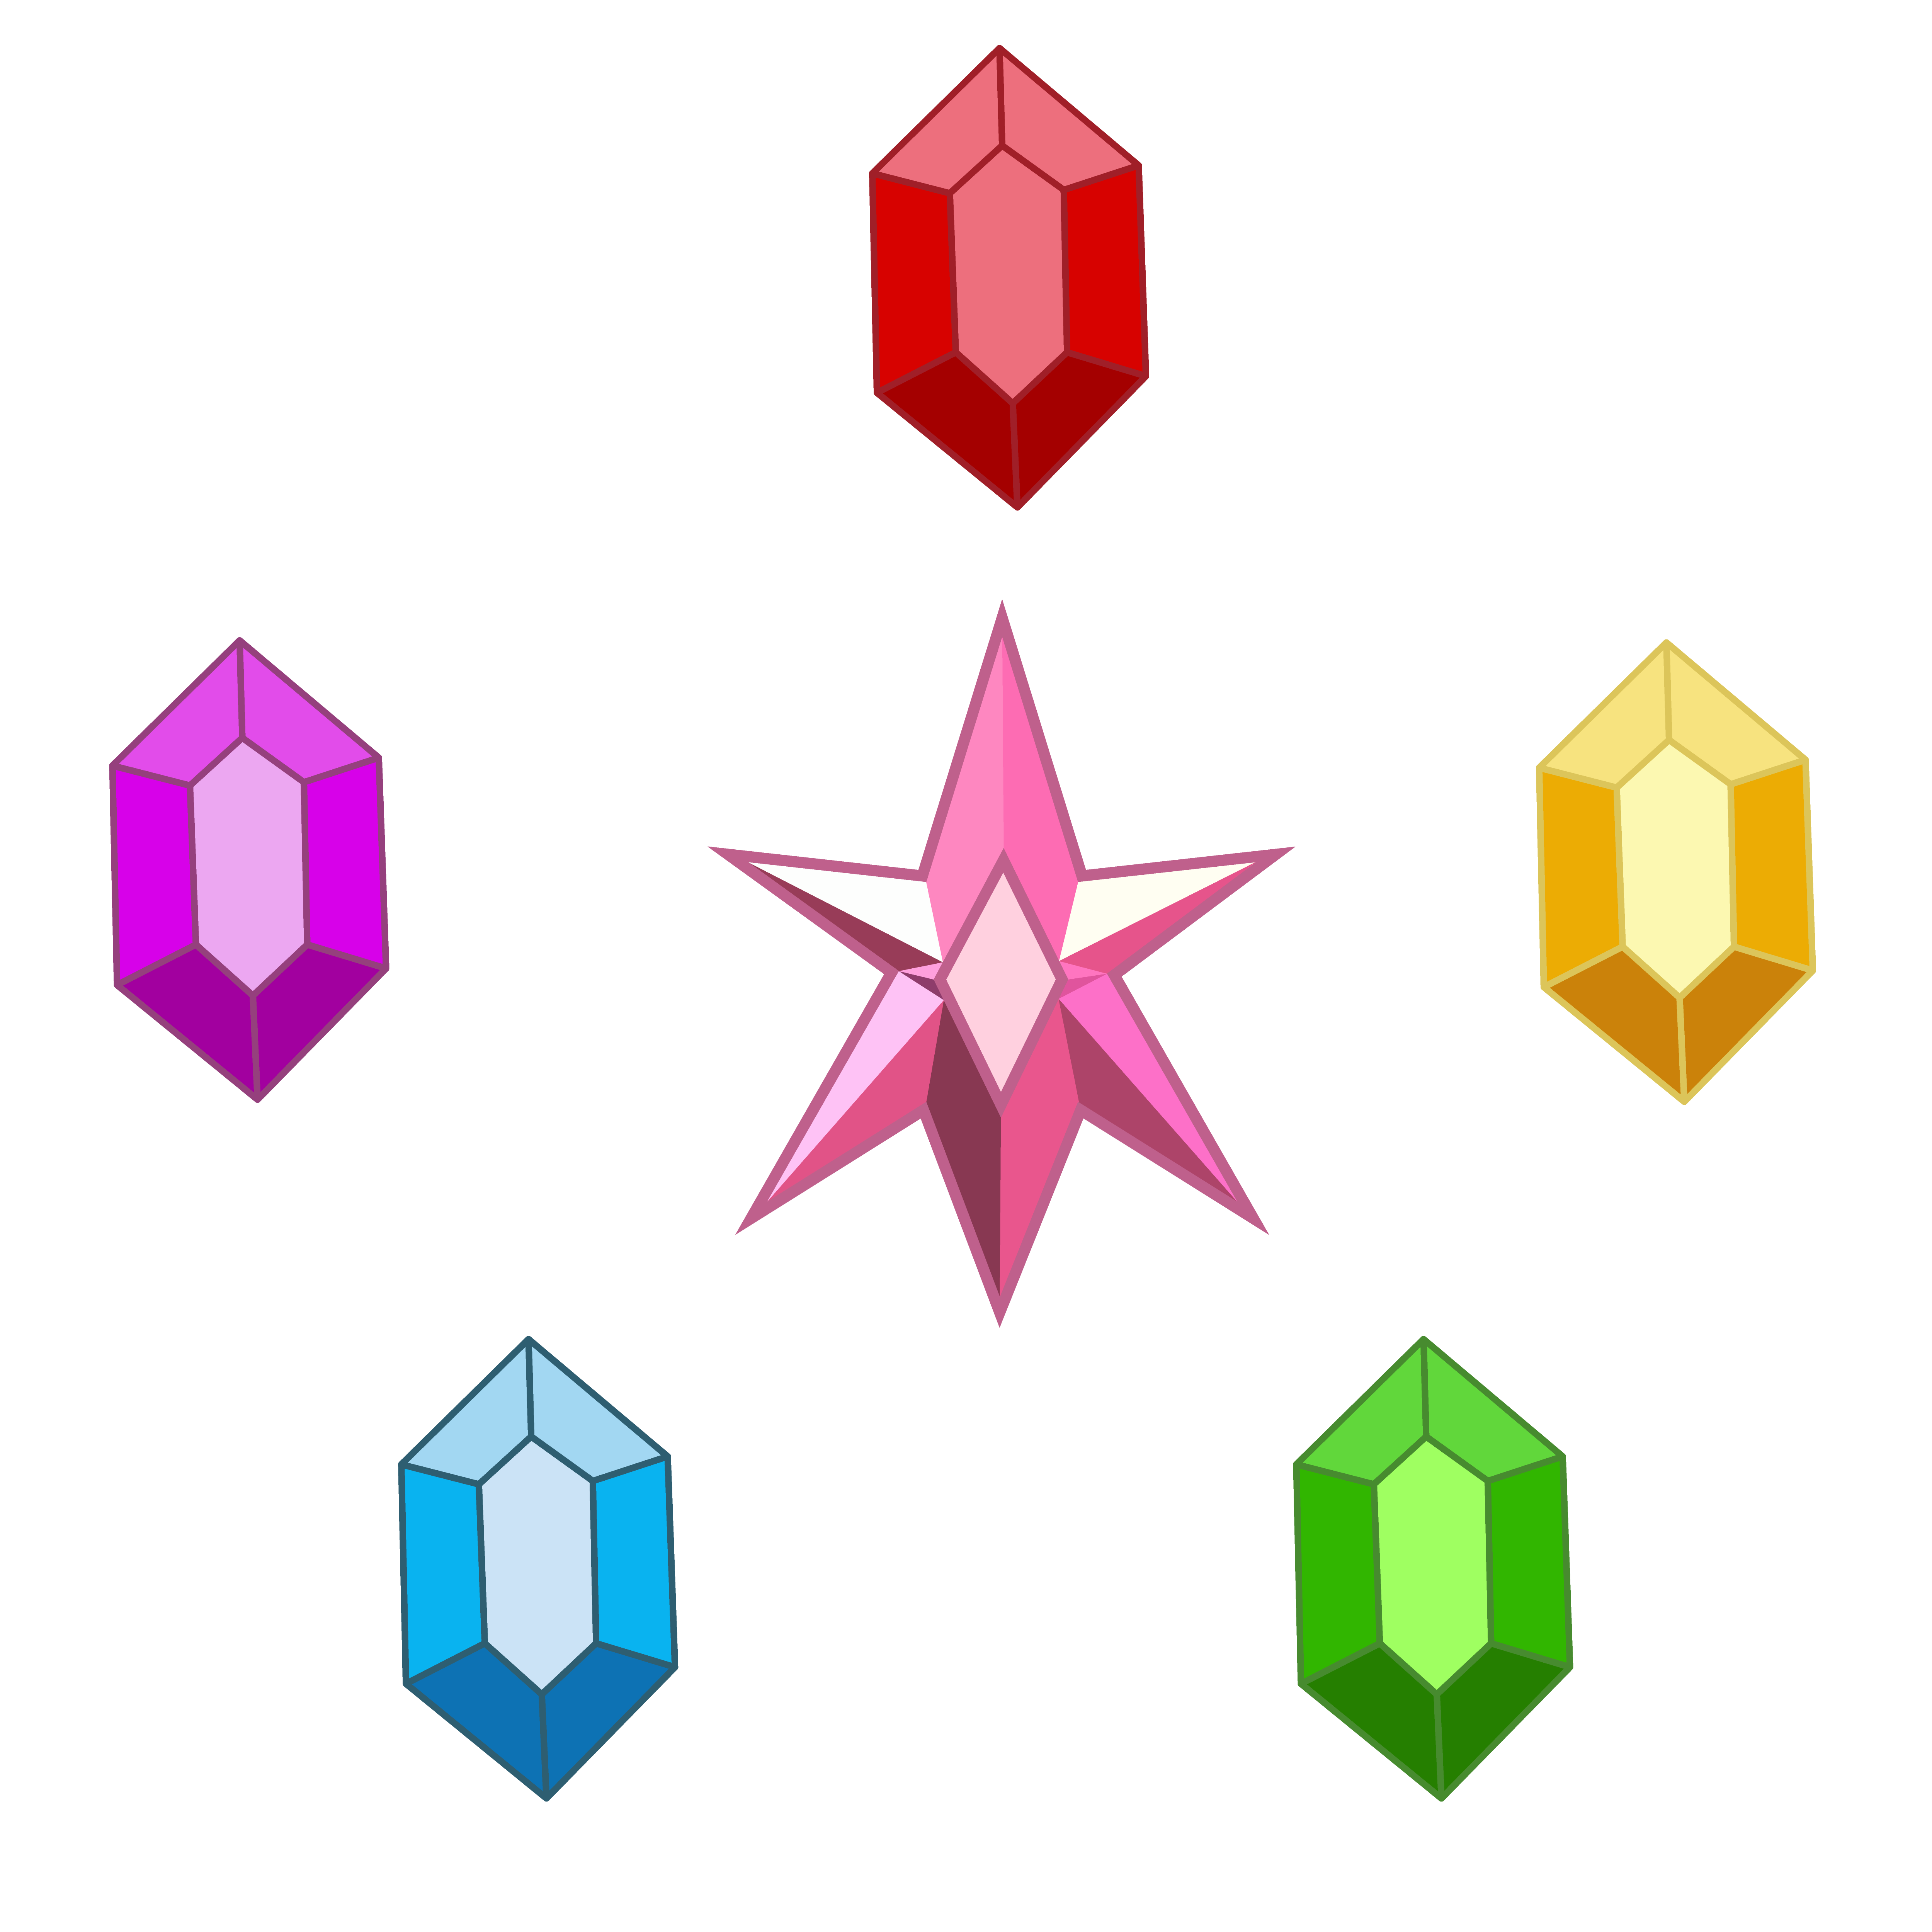 Elements Of Harmony (gems) By TechRainbow On DeviantArt